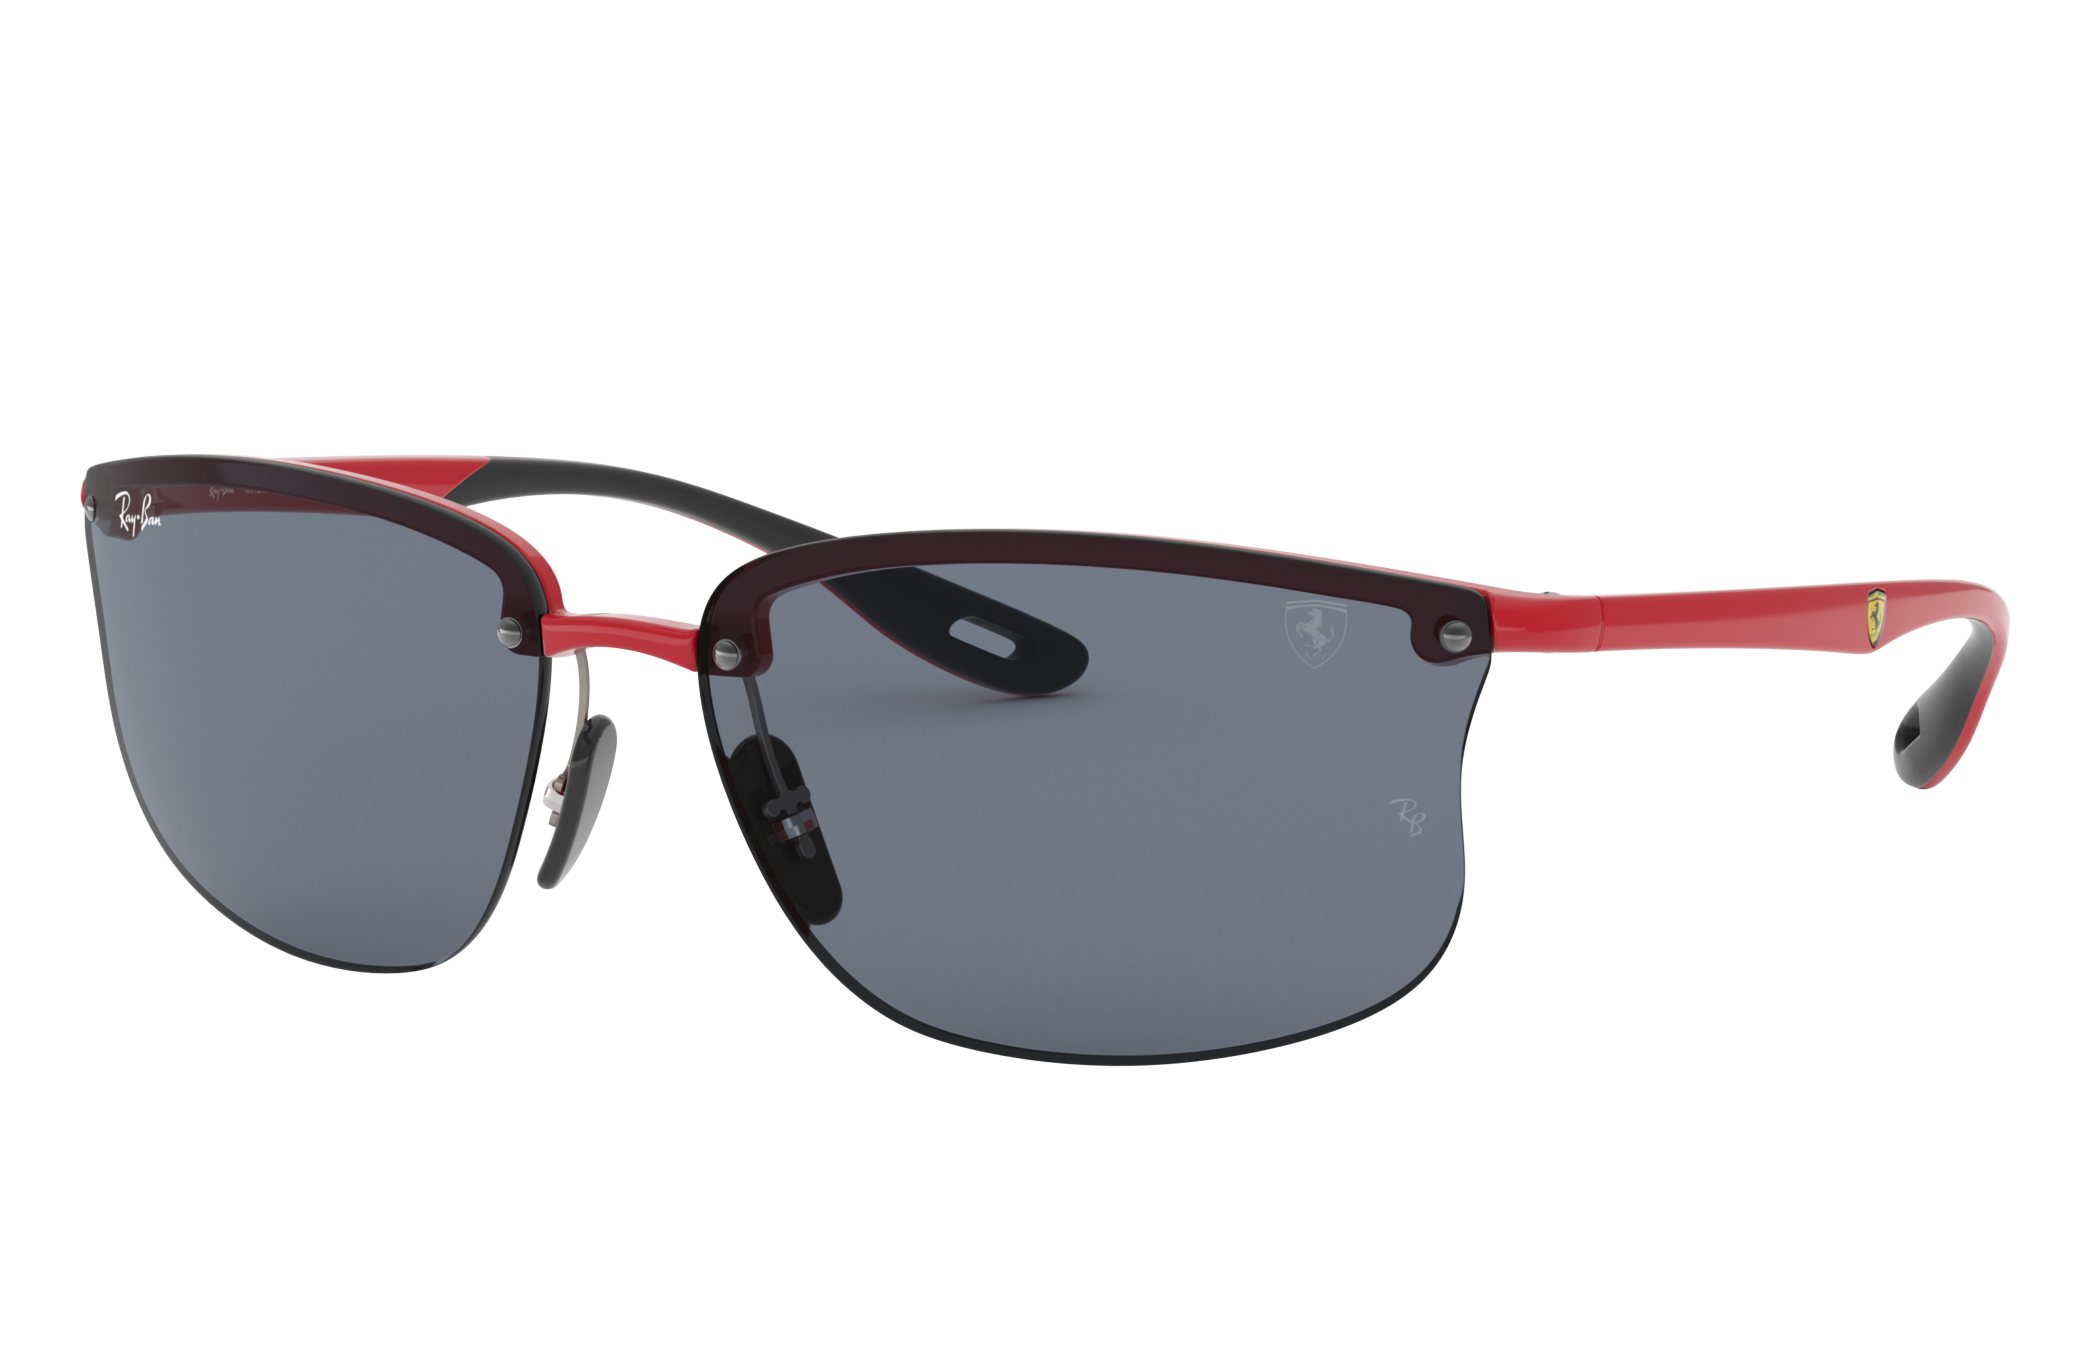 Ray-Ban Rb4322m Scuderia Ferrari Collection Red, Grey Lenses - RB4322M